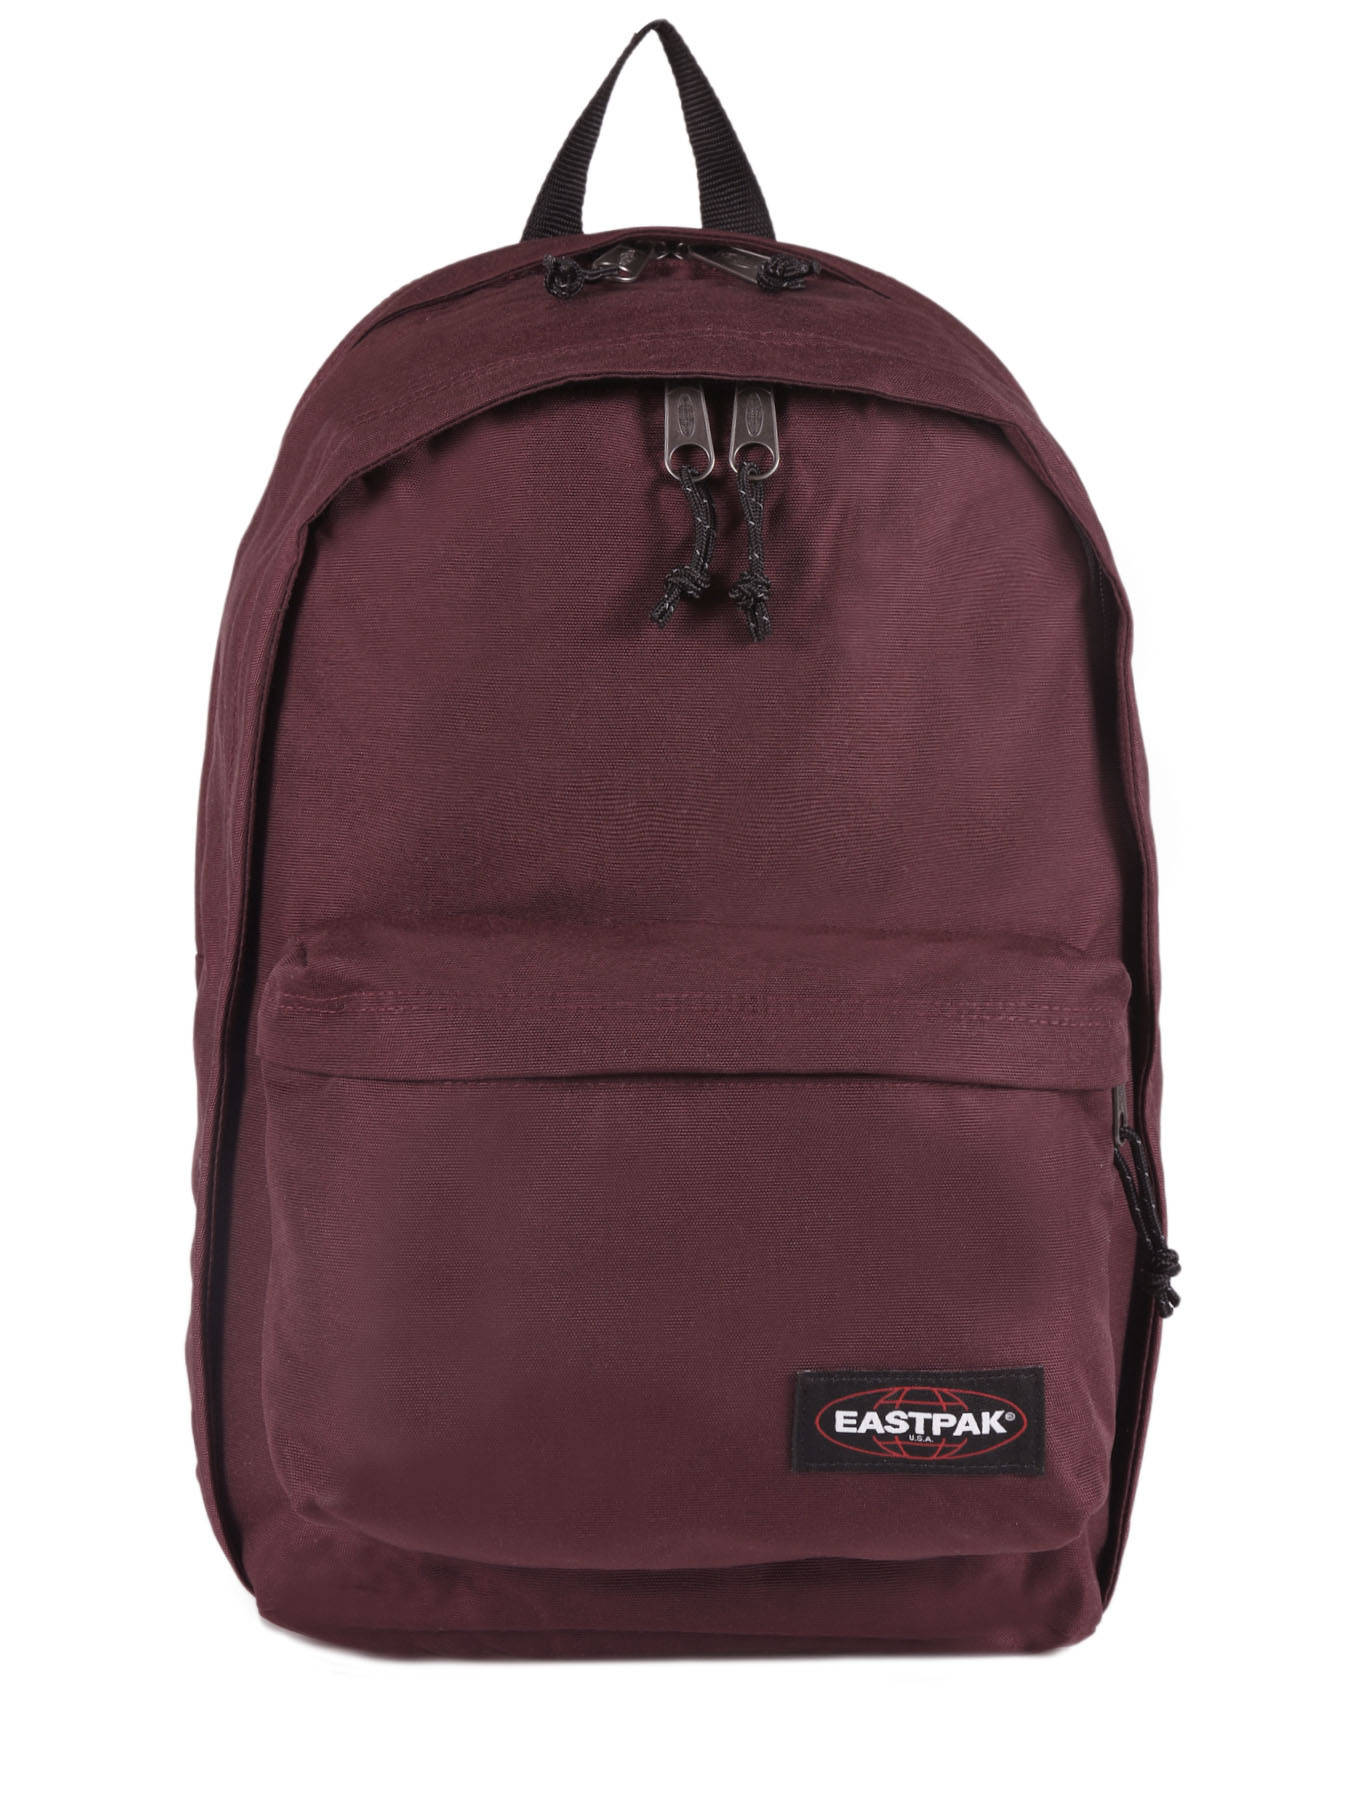 À Eastpak Work Sac Sur To Back Dos be Authentic Edisac dqx116ZE